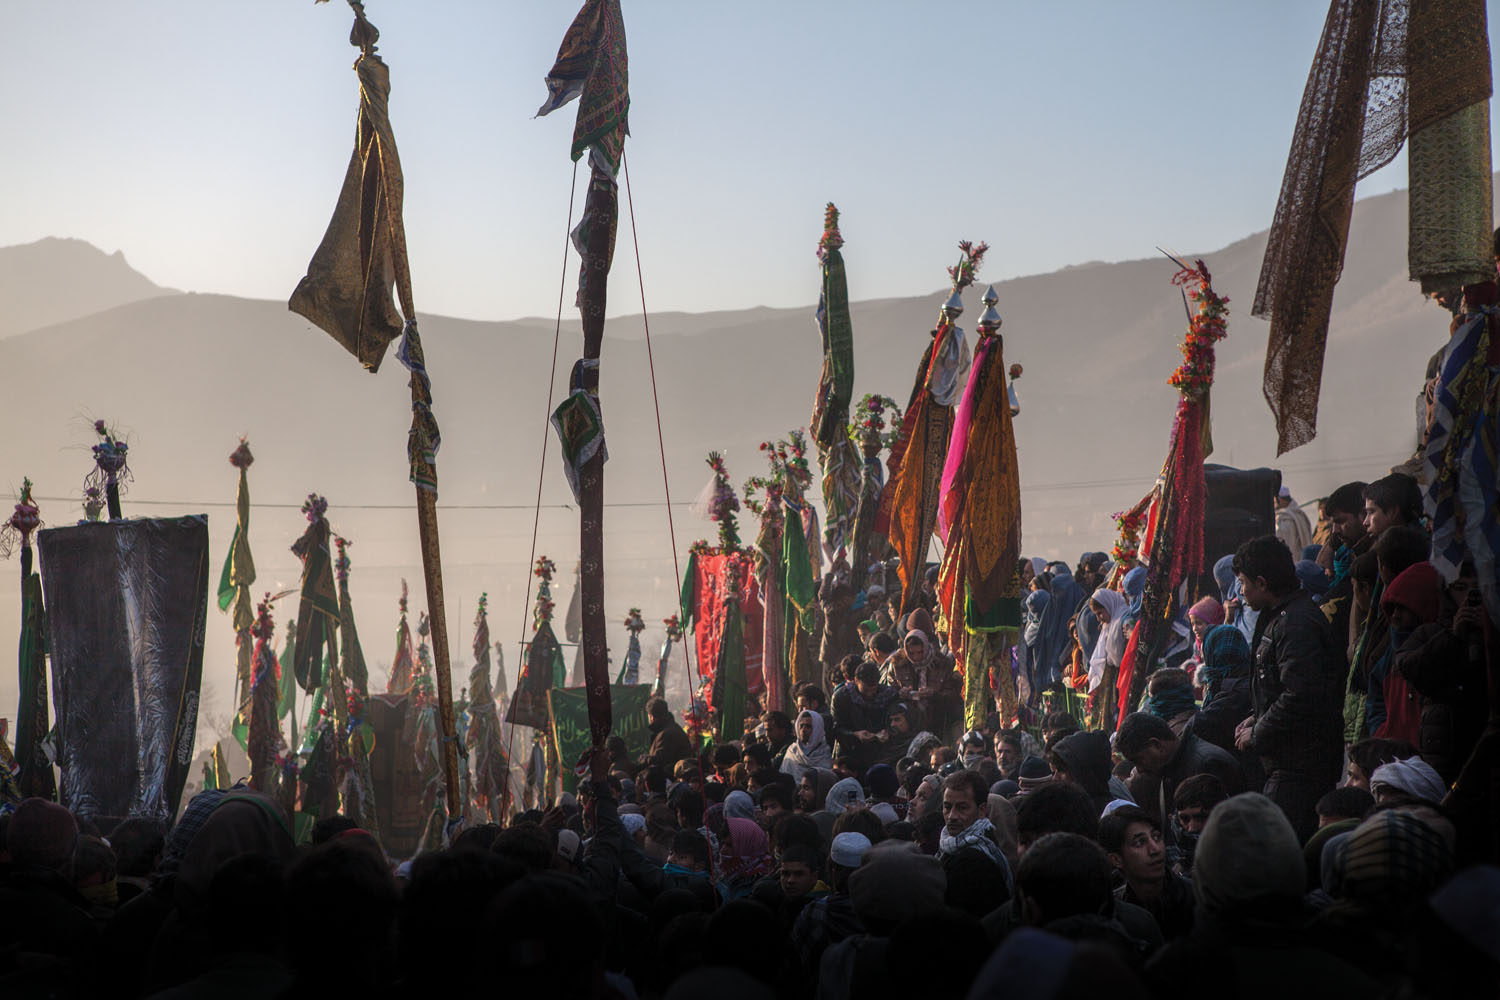 Sufi celebration. Kabul, Afganistan. 2010. Photo by Monika Bulaj.